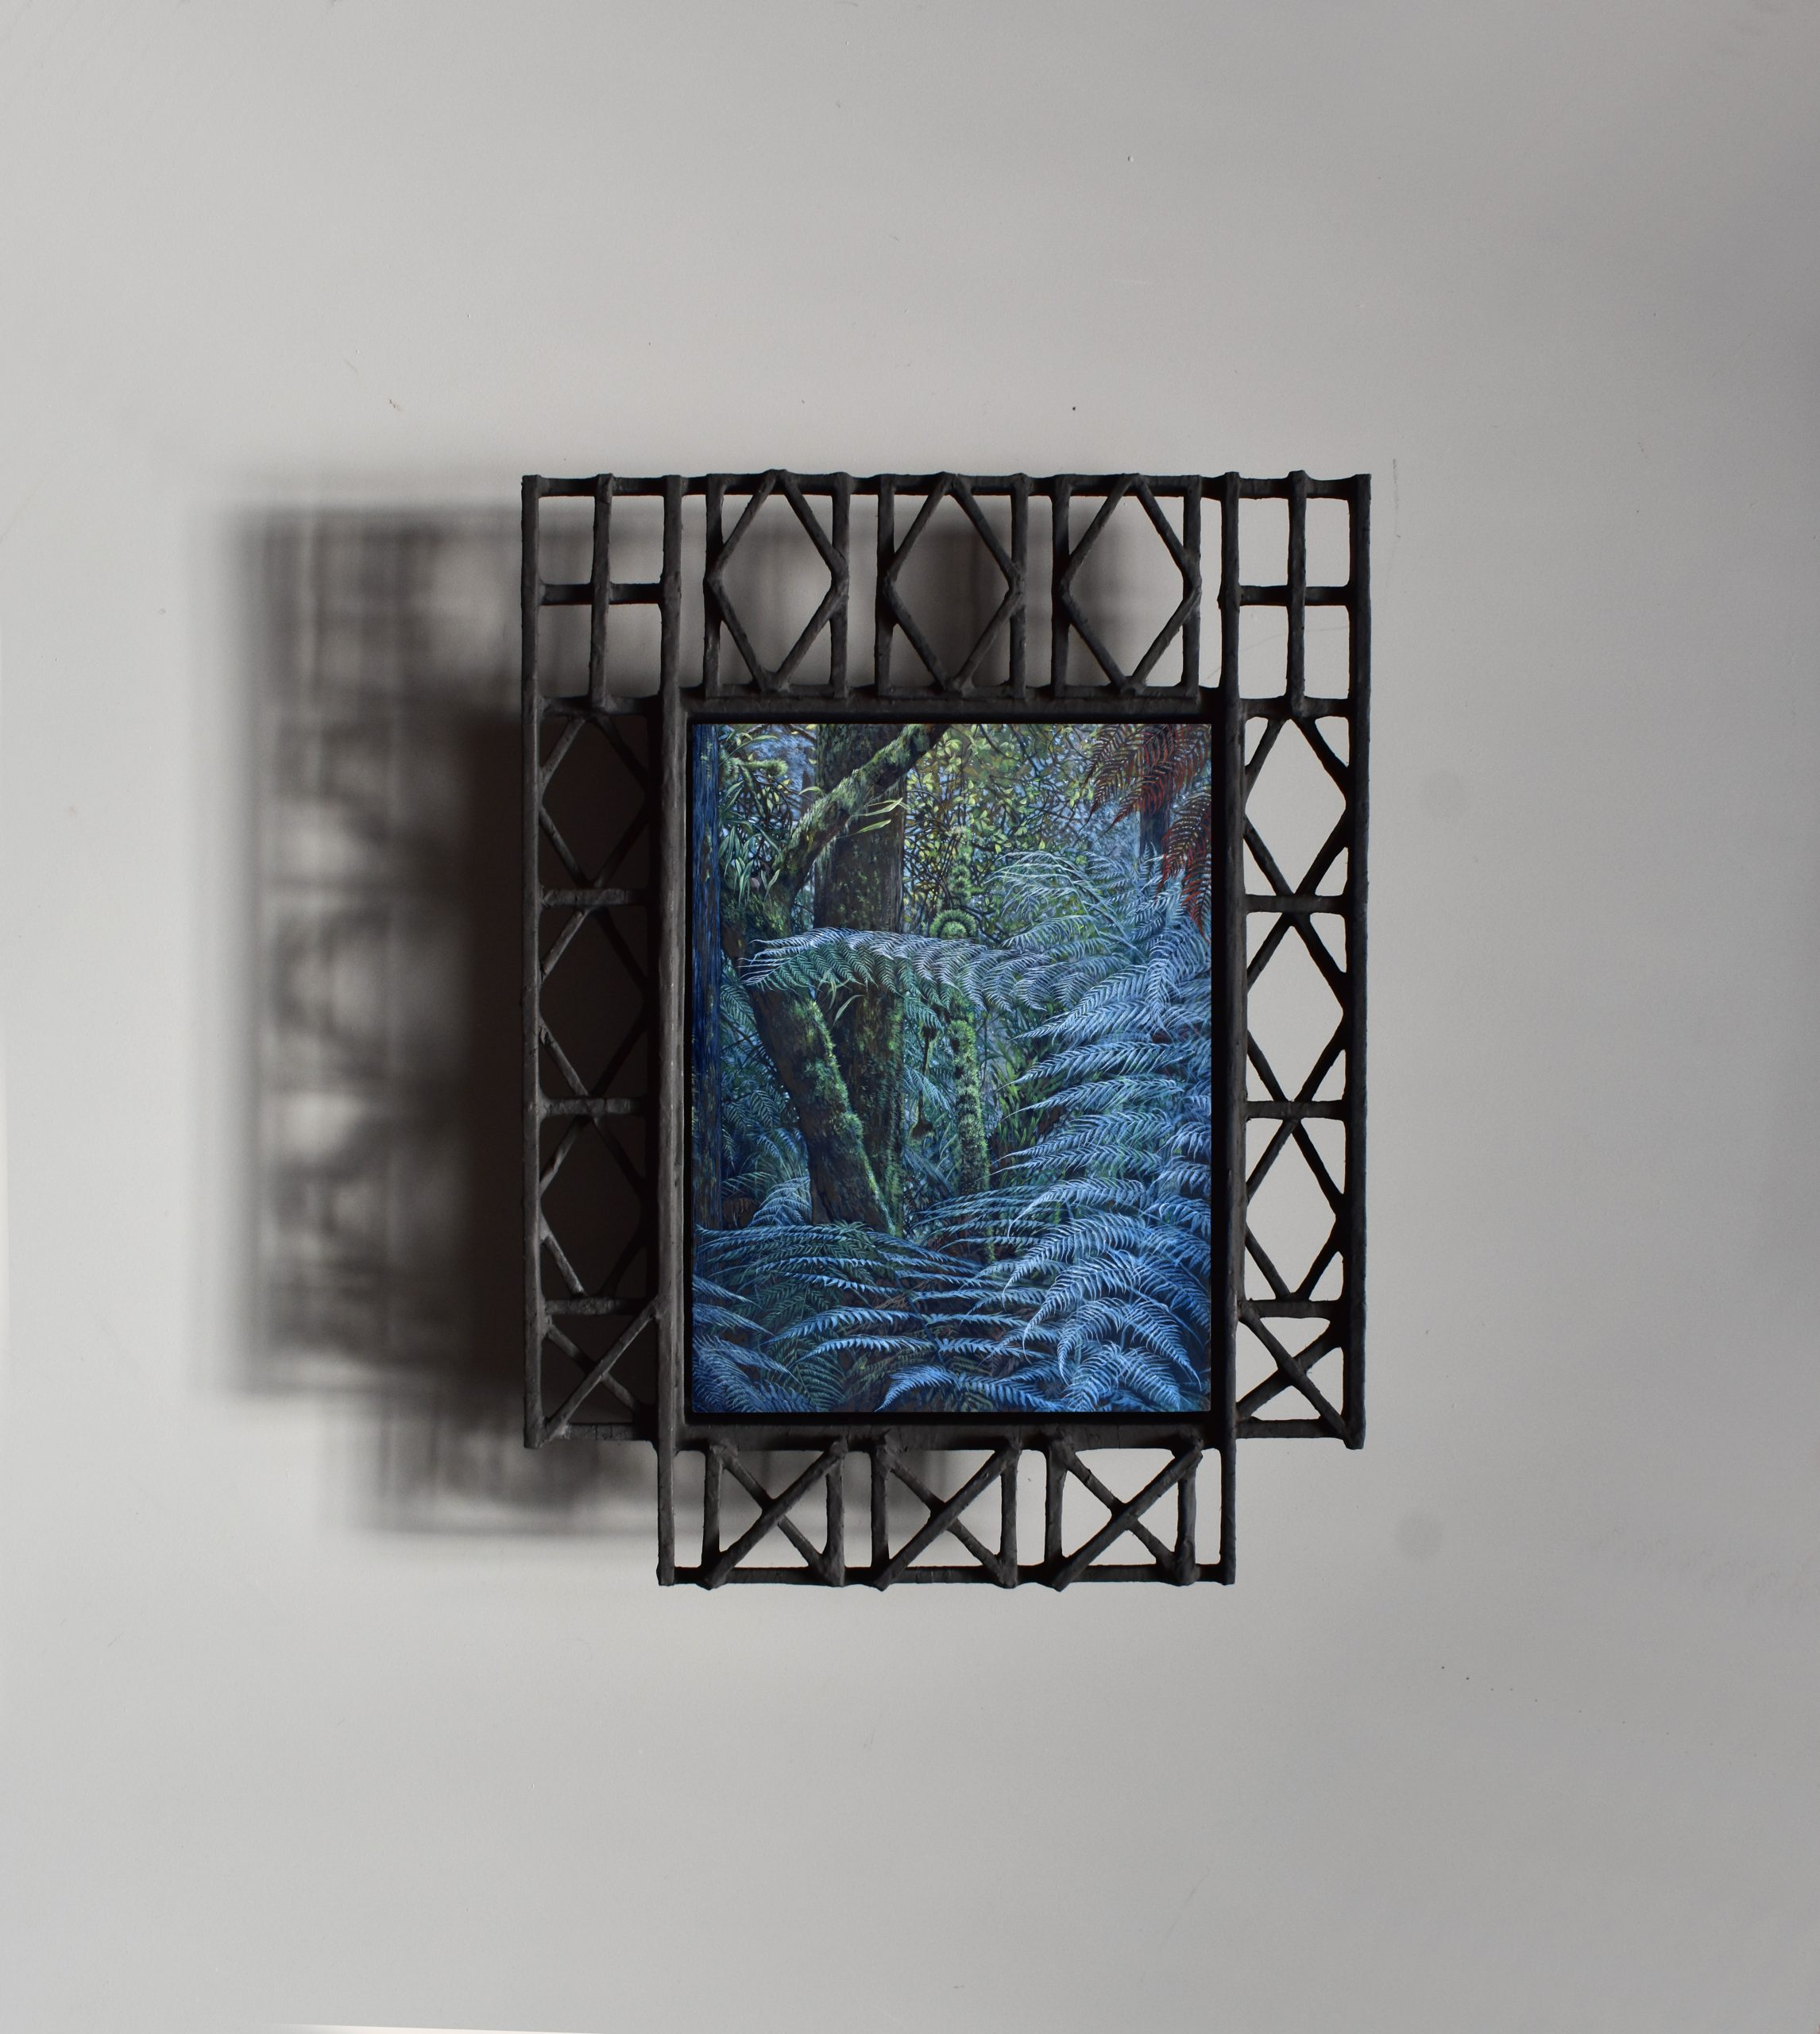 WC15 - Leaf Veils. 2020. Oil on board with timber and papier-mâché frame. 495 x 380mm